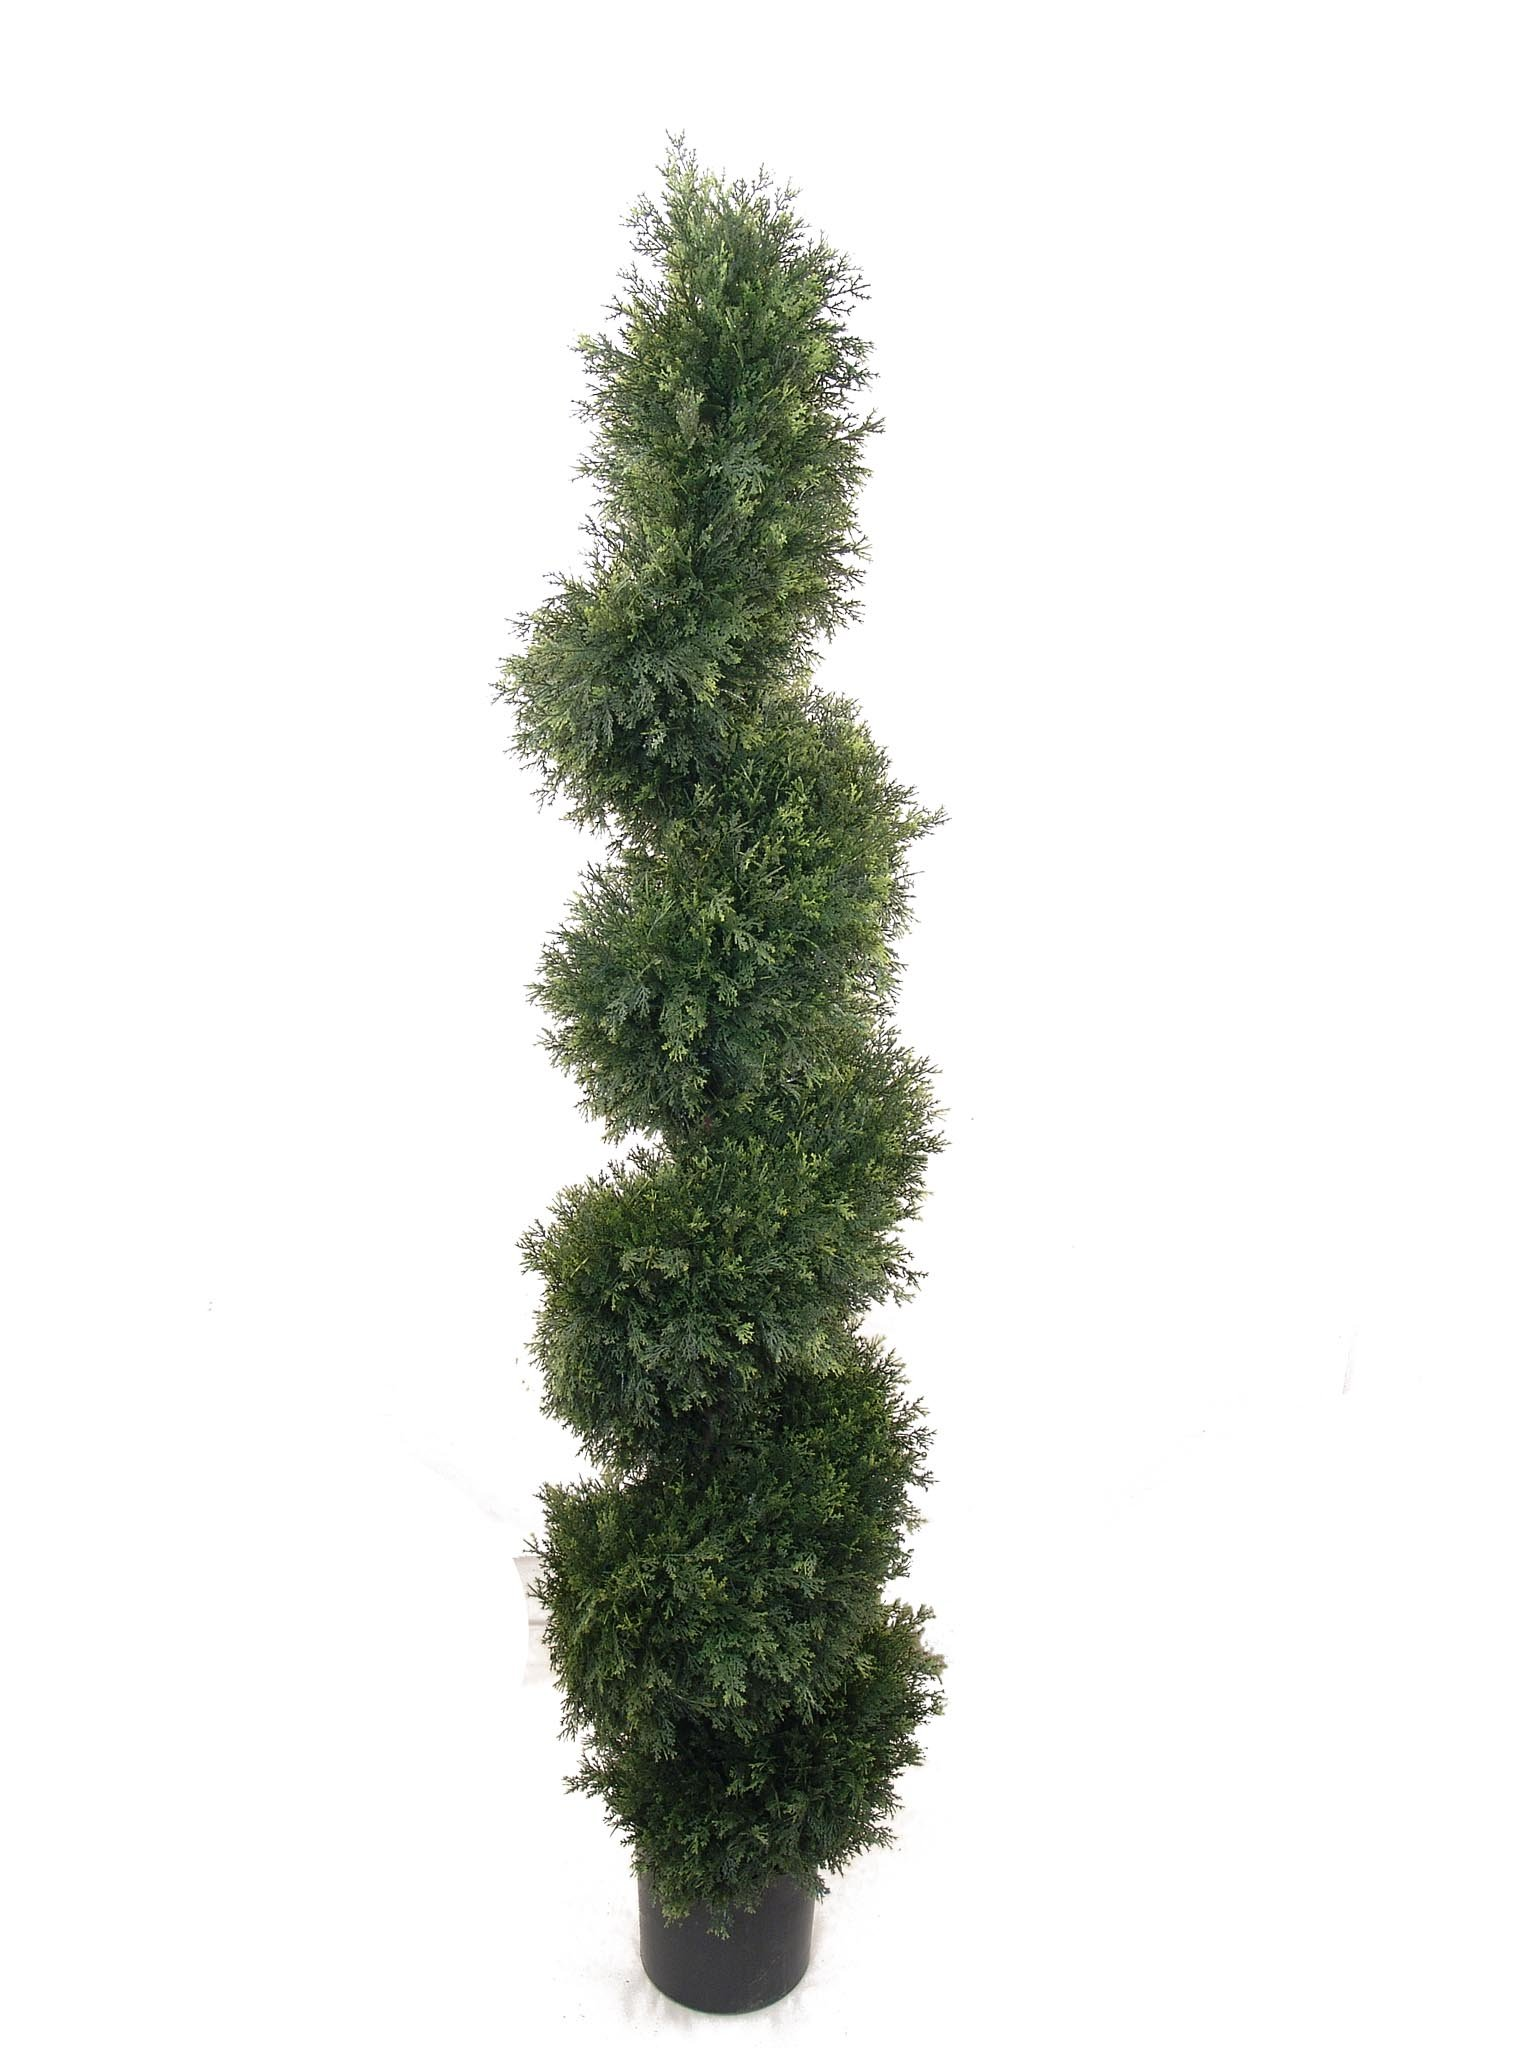 Larksilk 5' Cedar Topiary Artificial Spiral Tree Plant - Outdoor Topiary Trees Artificial Plants for Home Decor Indoor and Outdoors by Larksilk (Image #1)